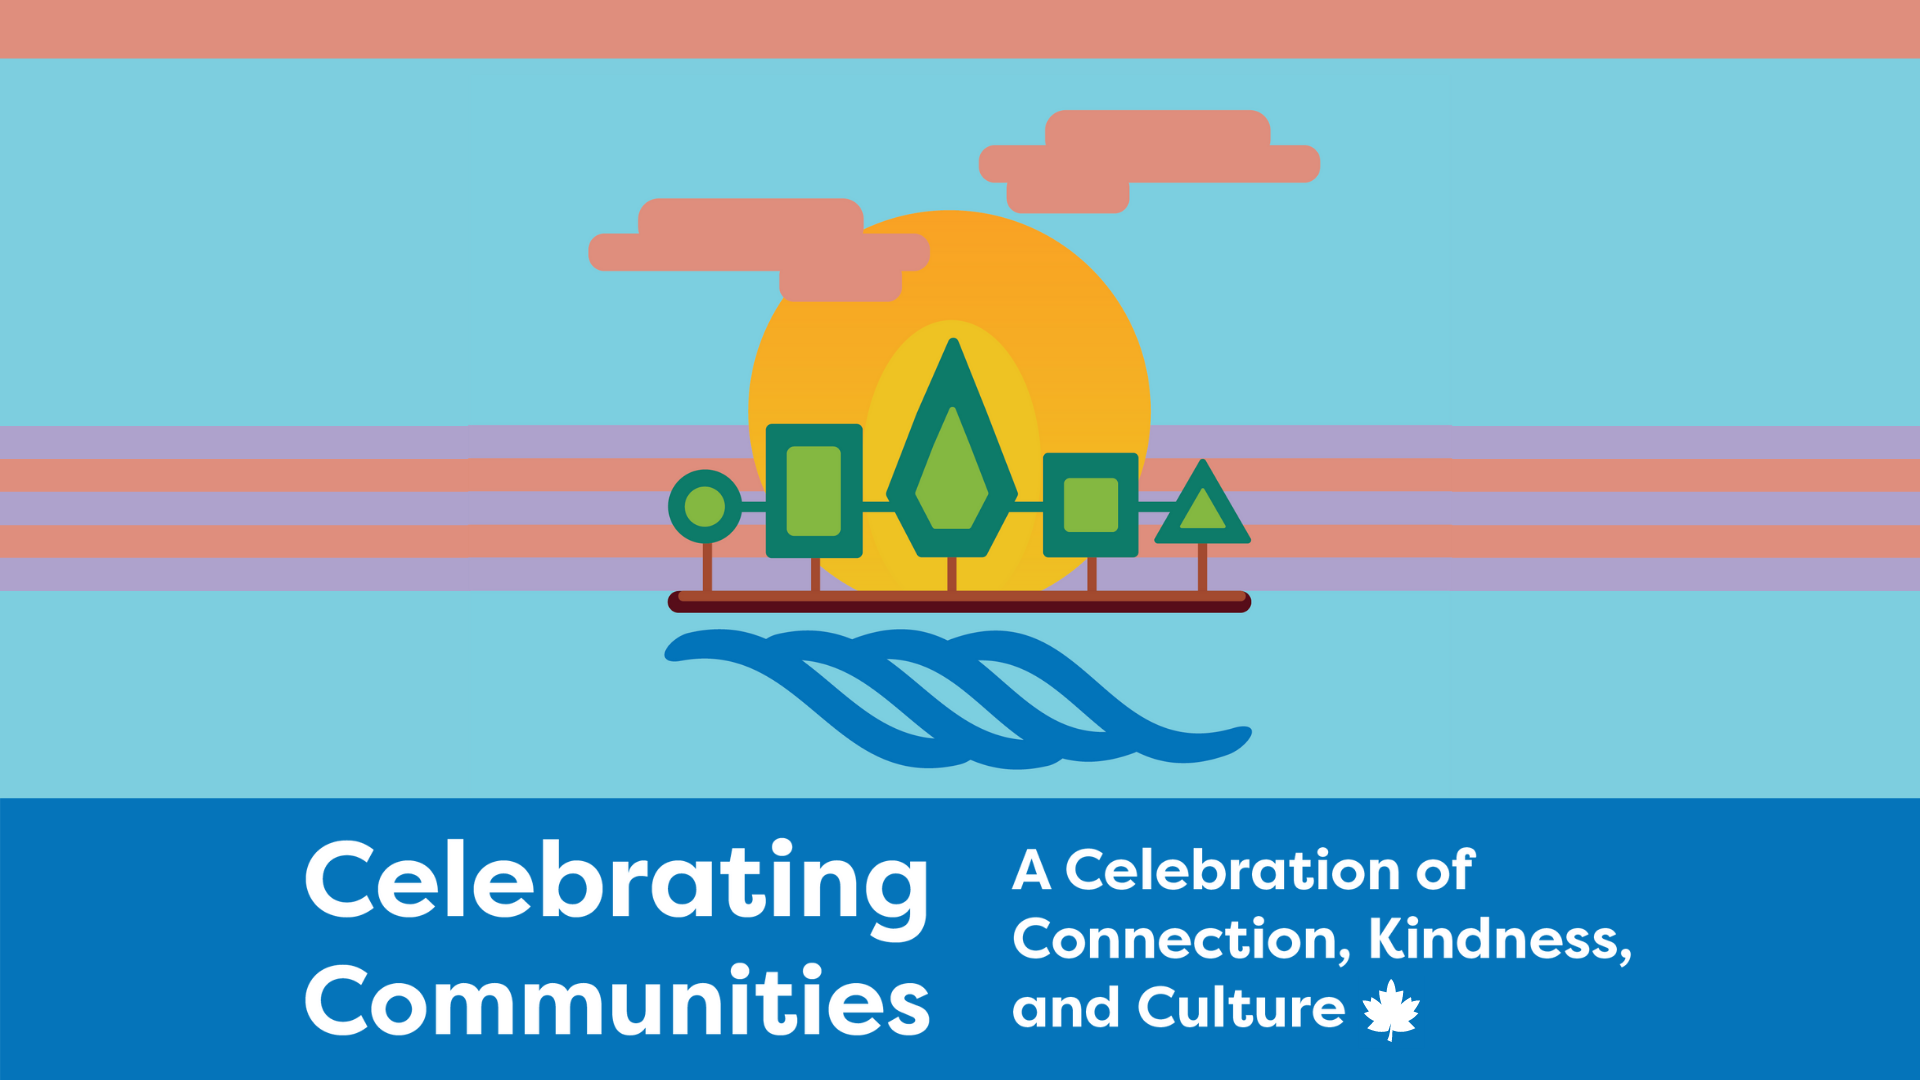 A graphic depicting clouds, sun, horizon, trees, and water with the words Celebrating Communities A Celebration of Connection Kindness and Culture beneath it.